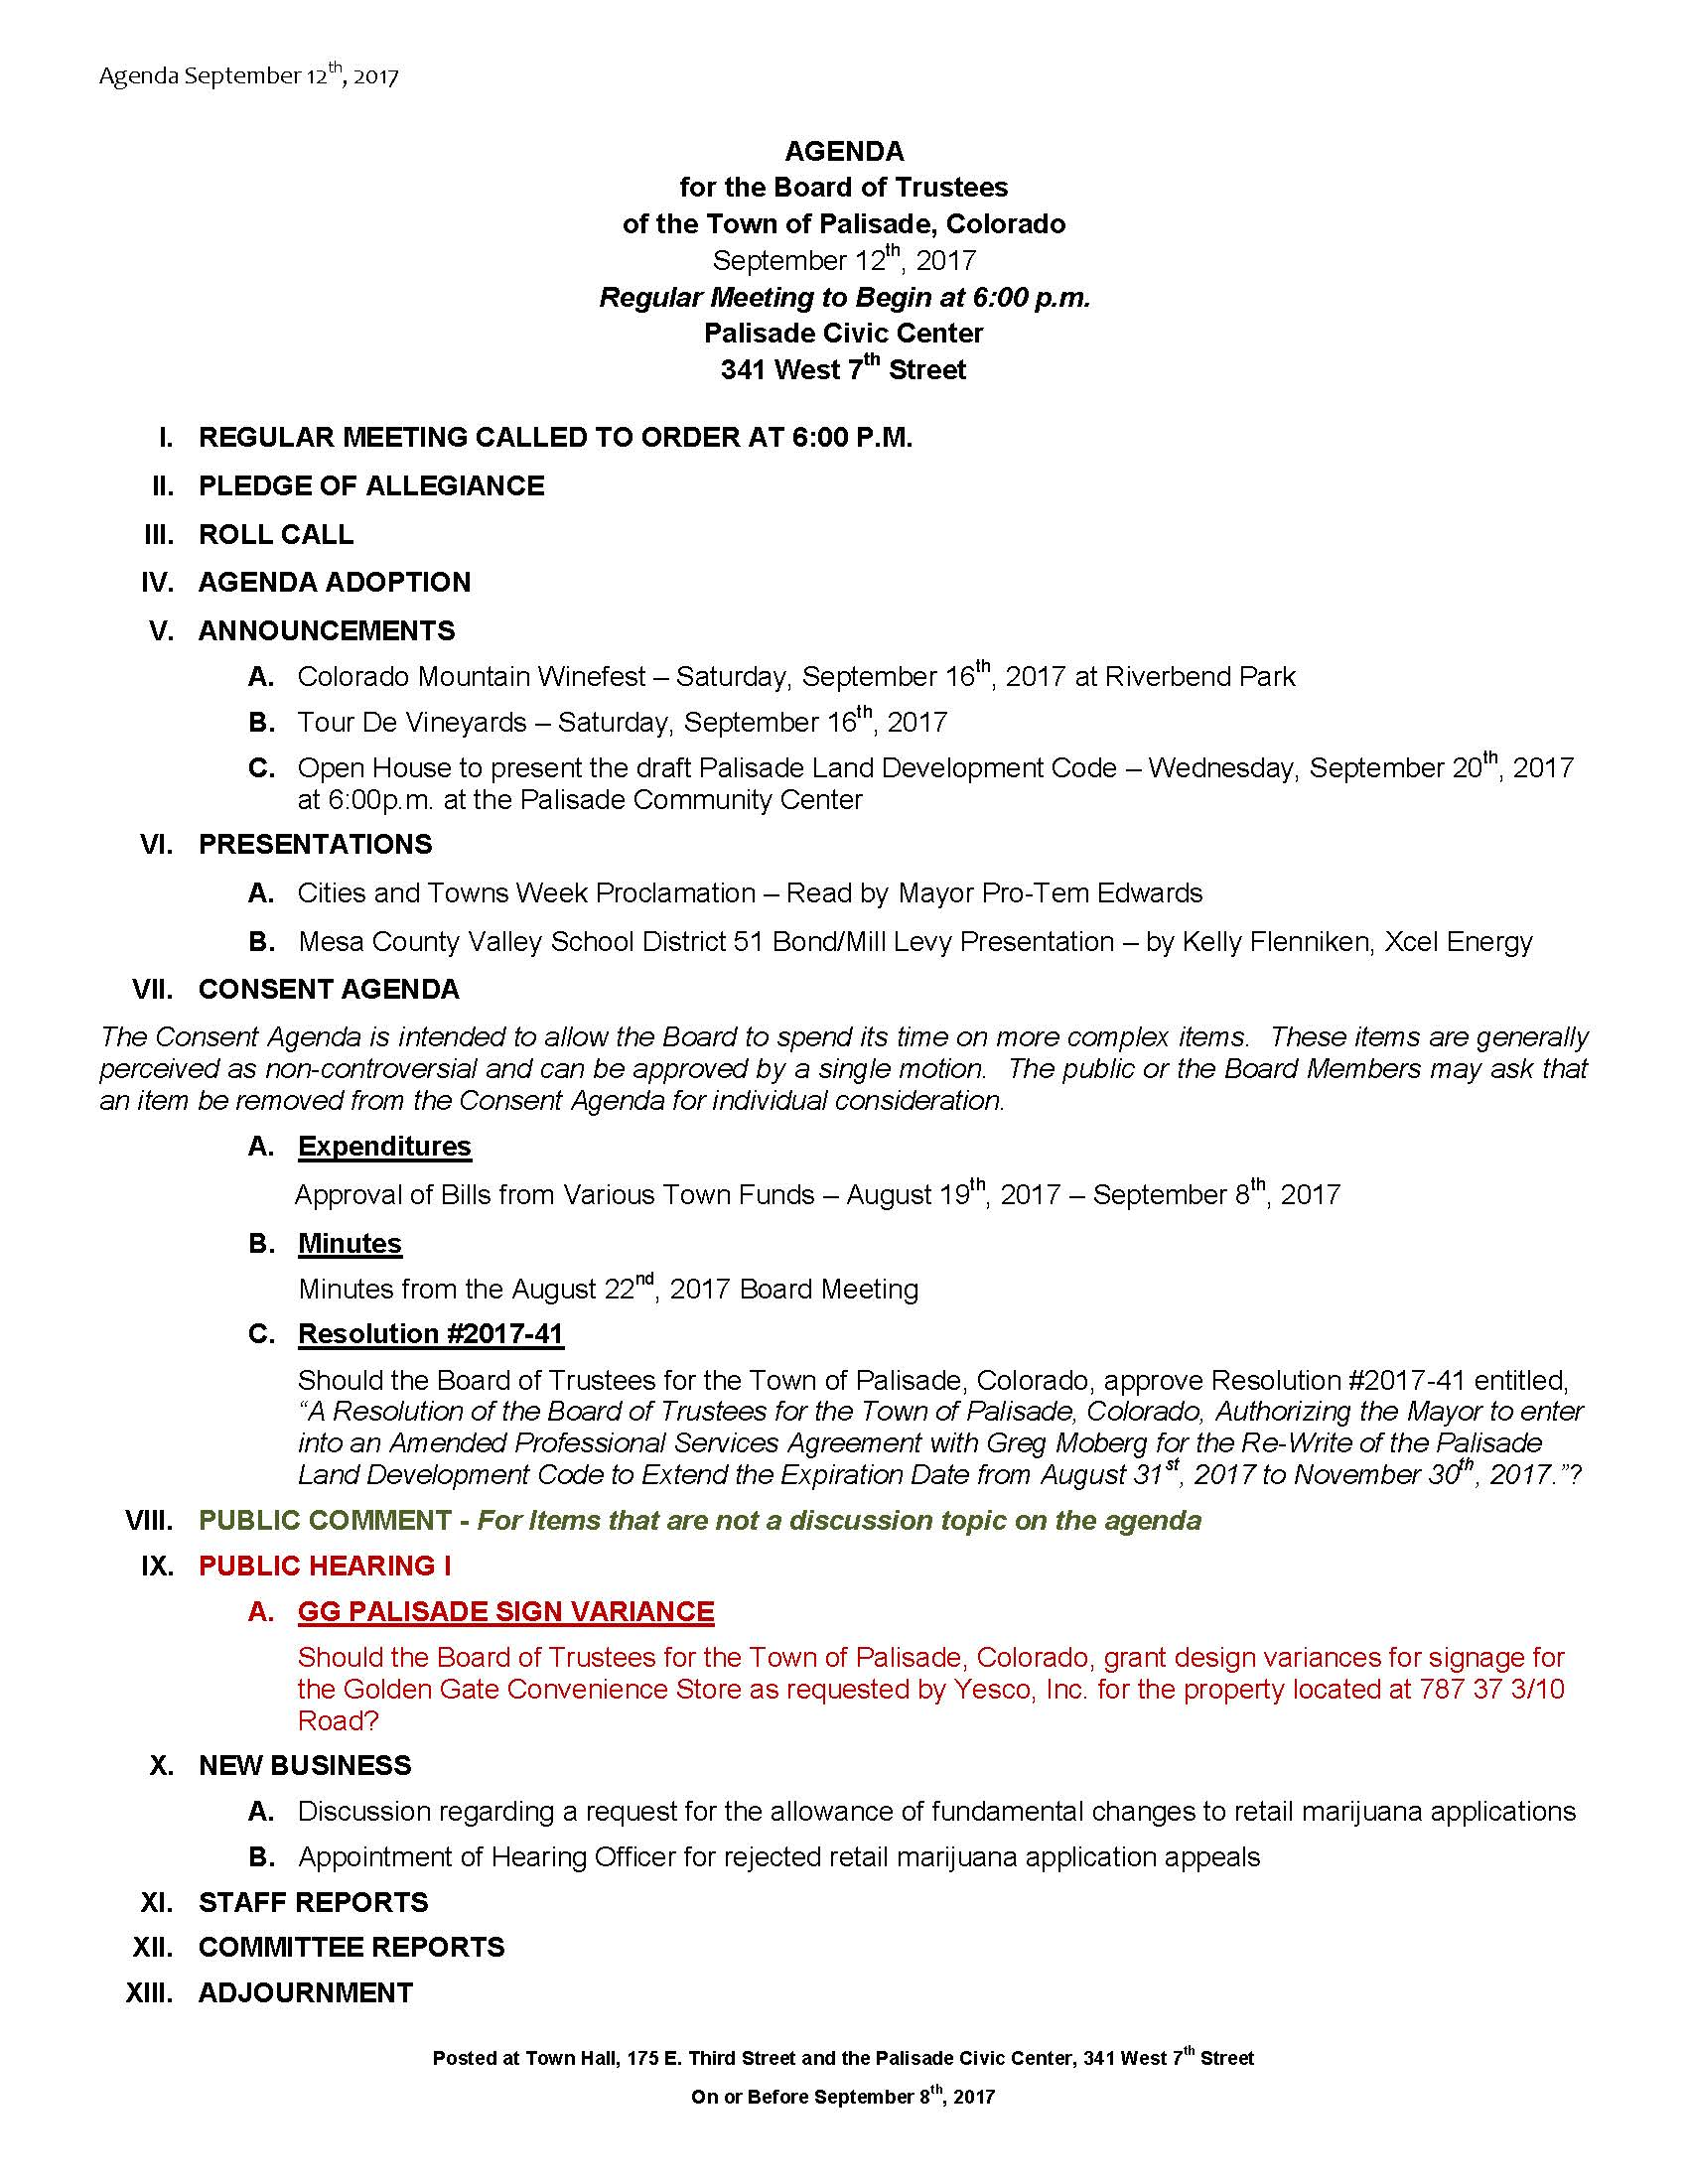 September 12th 2017 Board Meeting Agenda